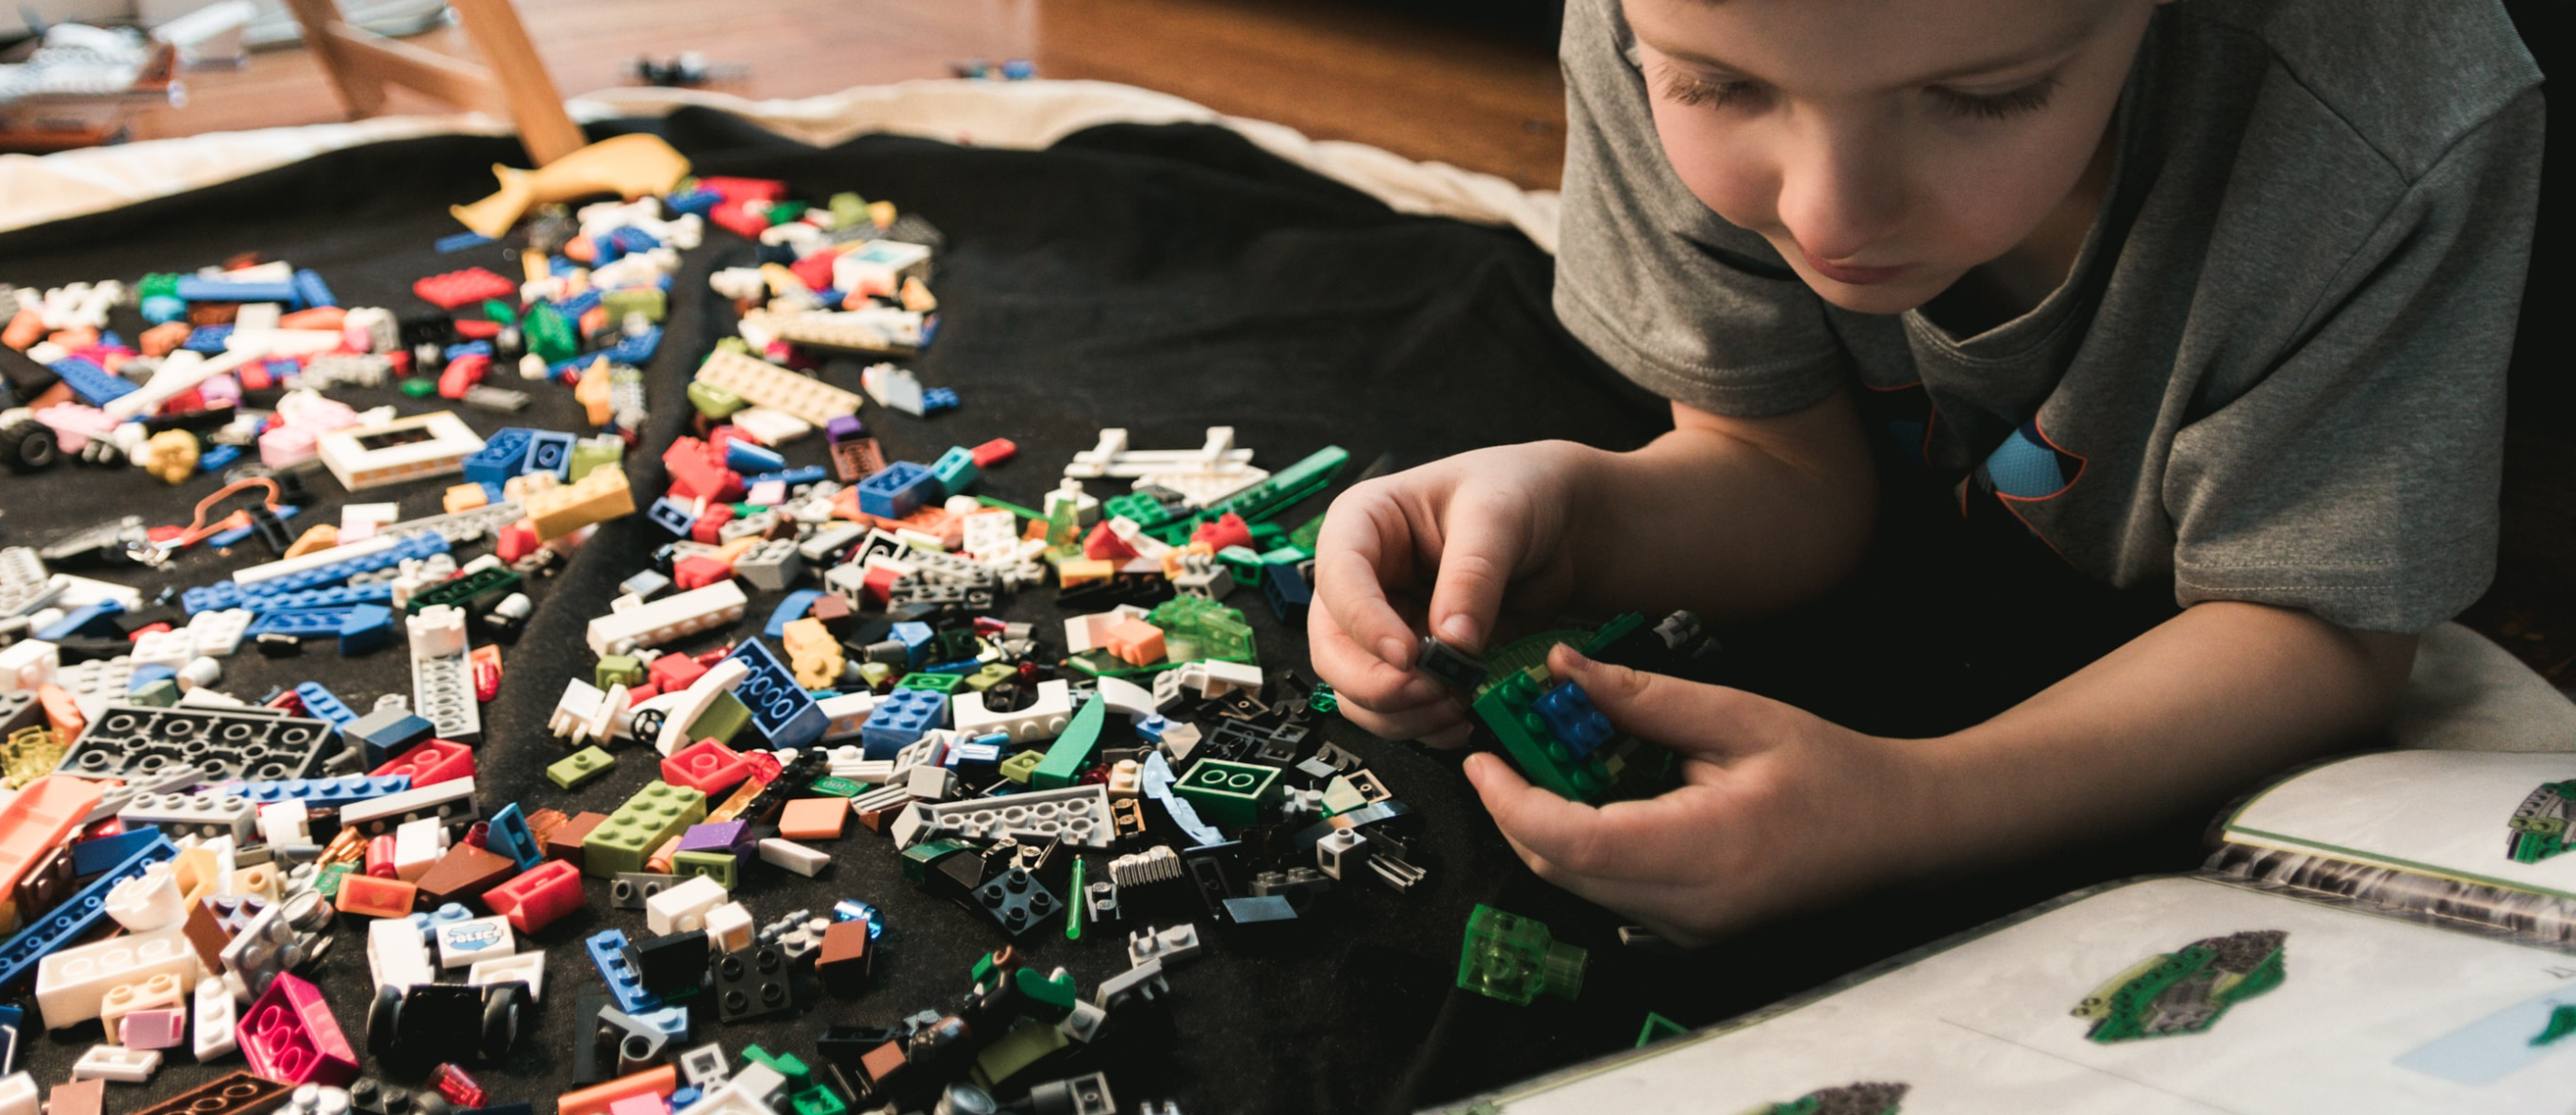 Child playing on the floor with numerous LEGO bricks